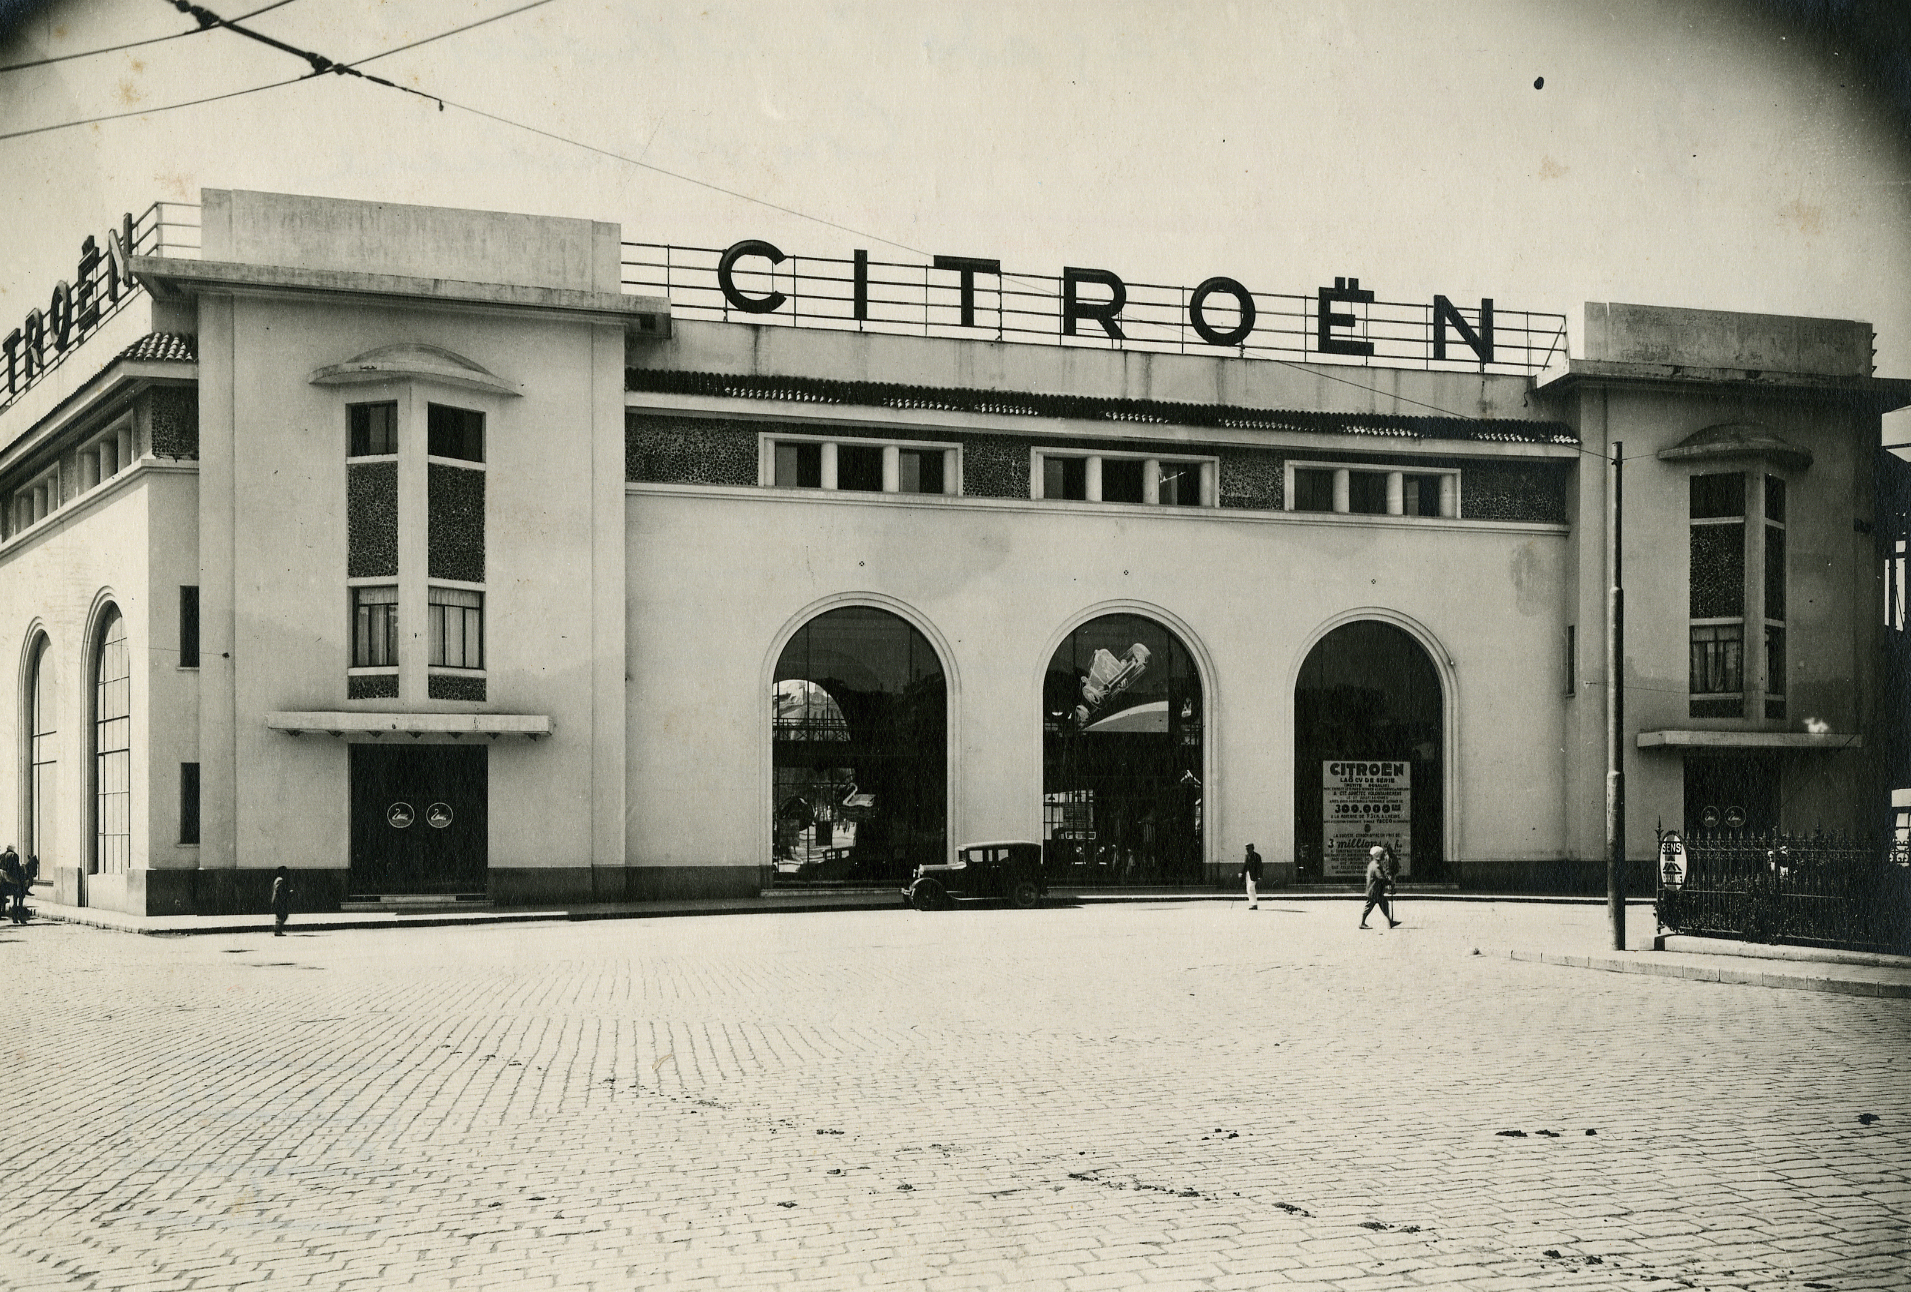 Ancien garage citro n constantine archives d for Garage citroen firminy